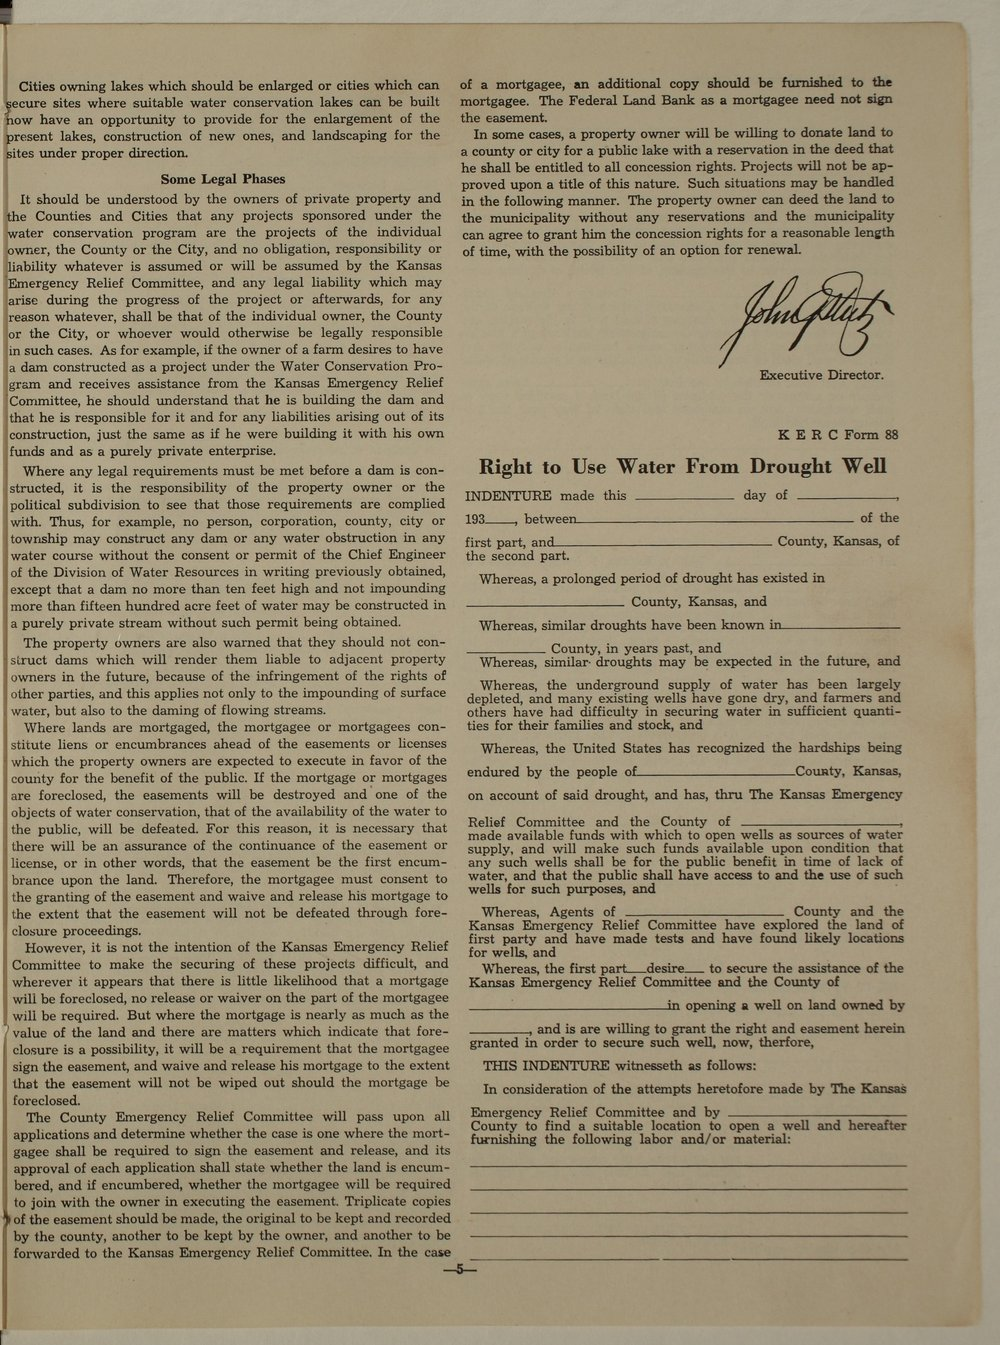 Kansas Emergency Relief Committee, bulletin 72 - 5